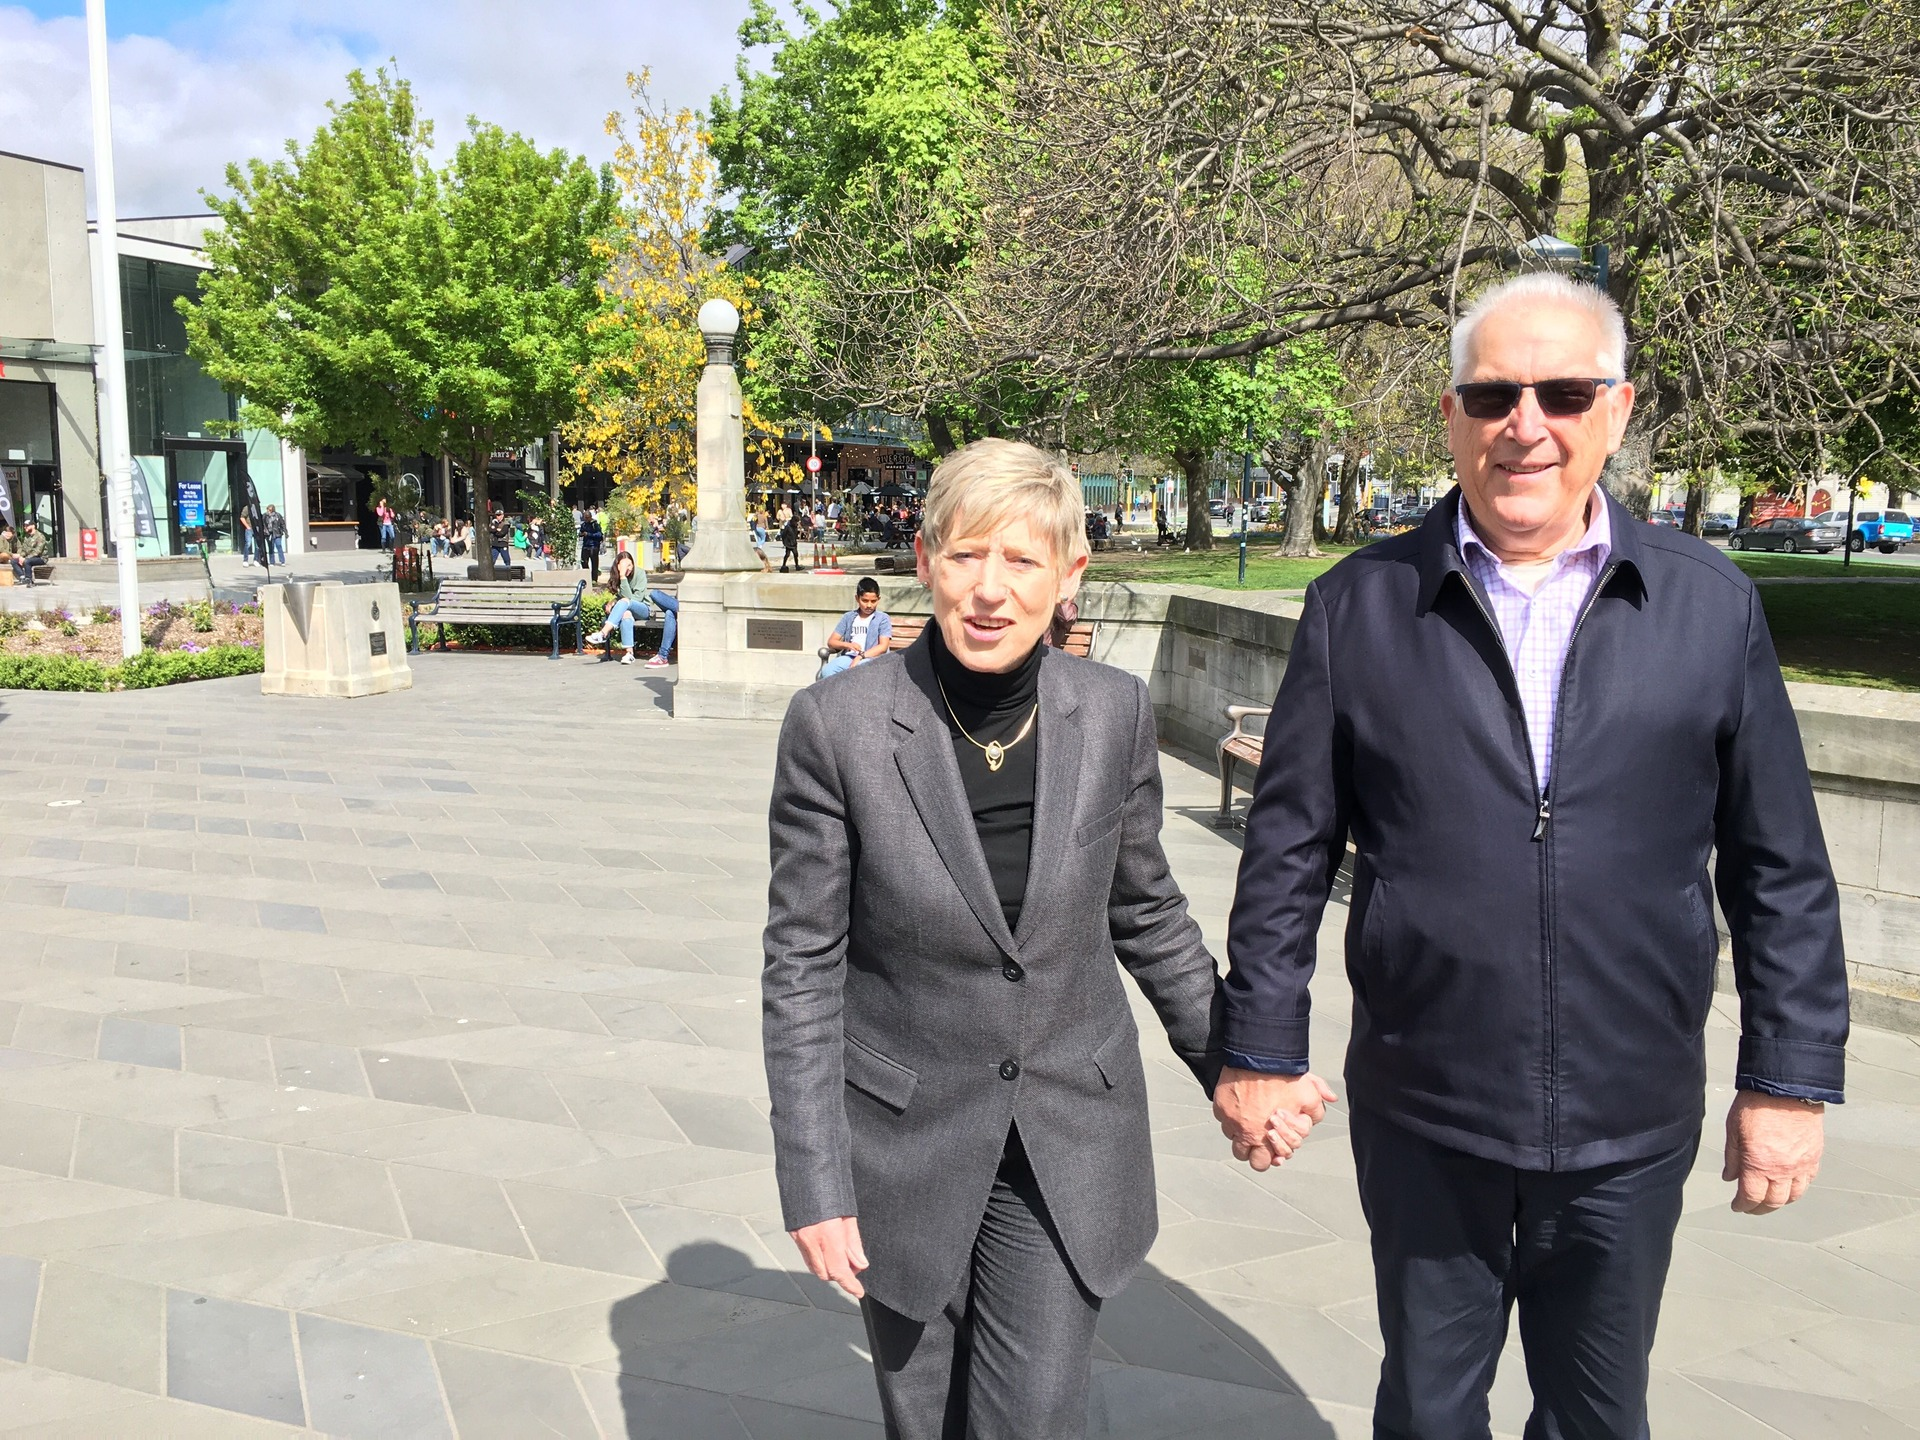 Lianne Dalziel wins Christchurch mayoralty after hardest-fought election